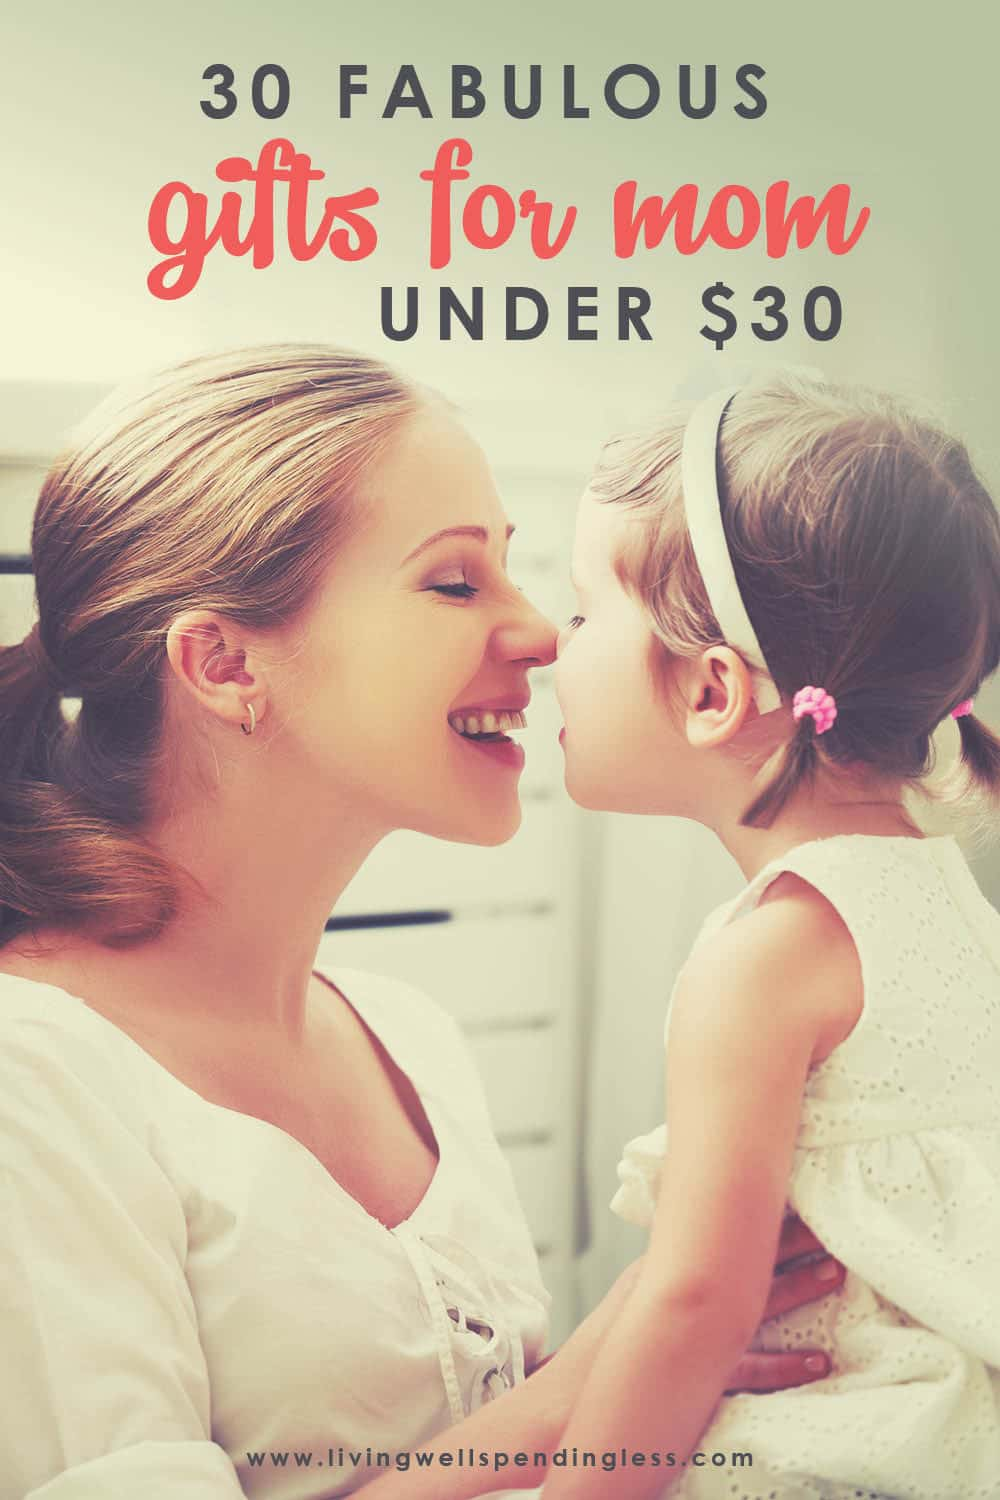 Looking for some perfect and affordable Mother's Day gifts? Here's your chance to make your Mother's day extra special with these 30 gifts all under $30! #mothersday #giftsunder30 #giftgiving #gifts #bargainshopping #momgifts #giftsformom #giftguide